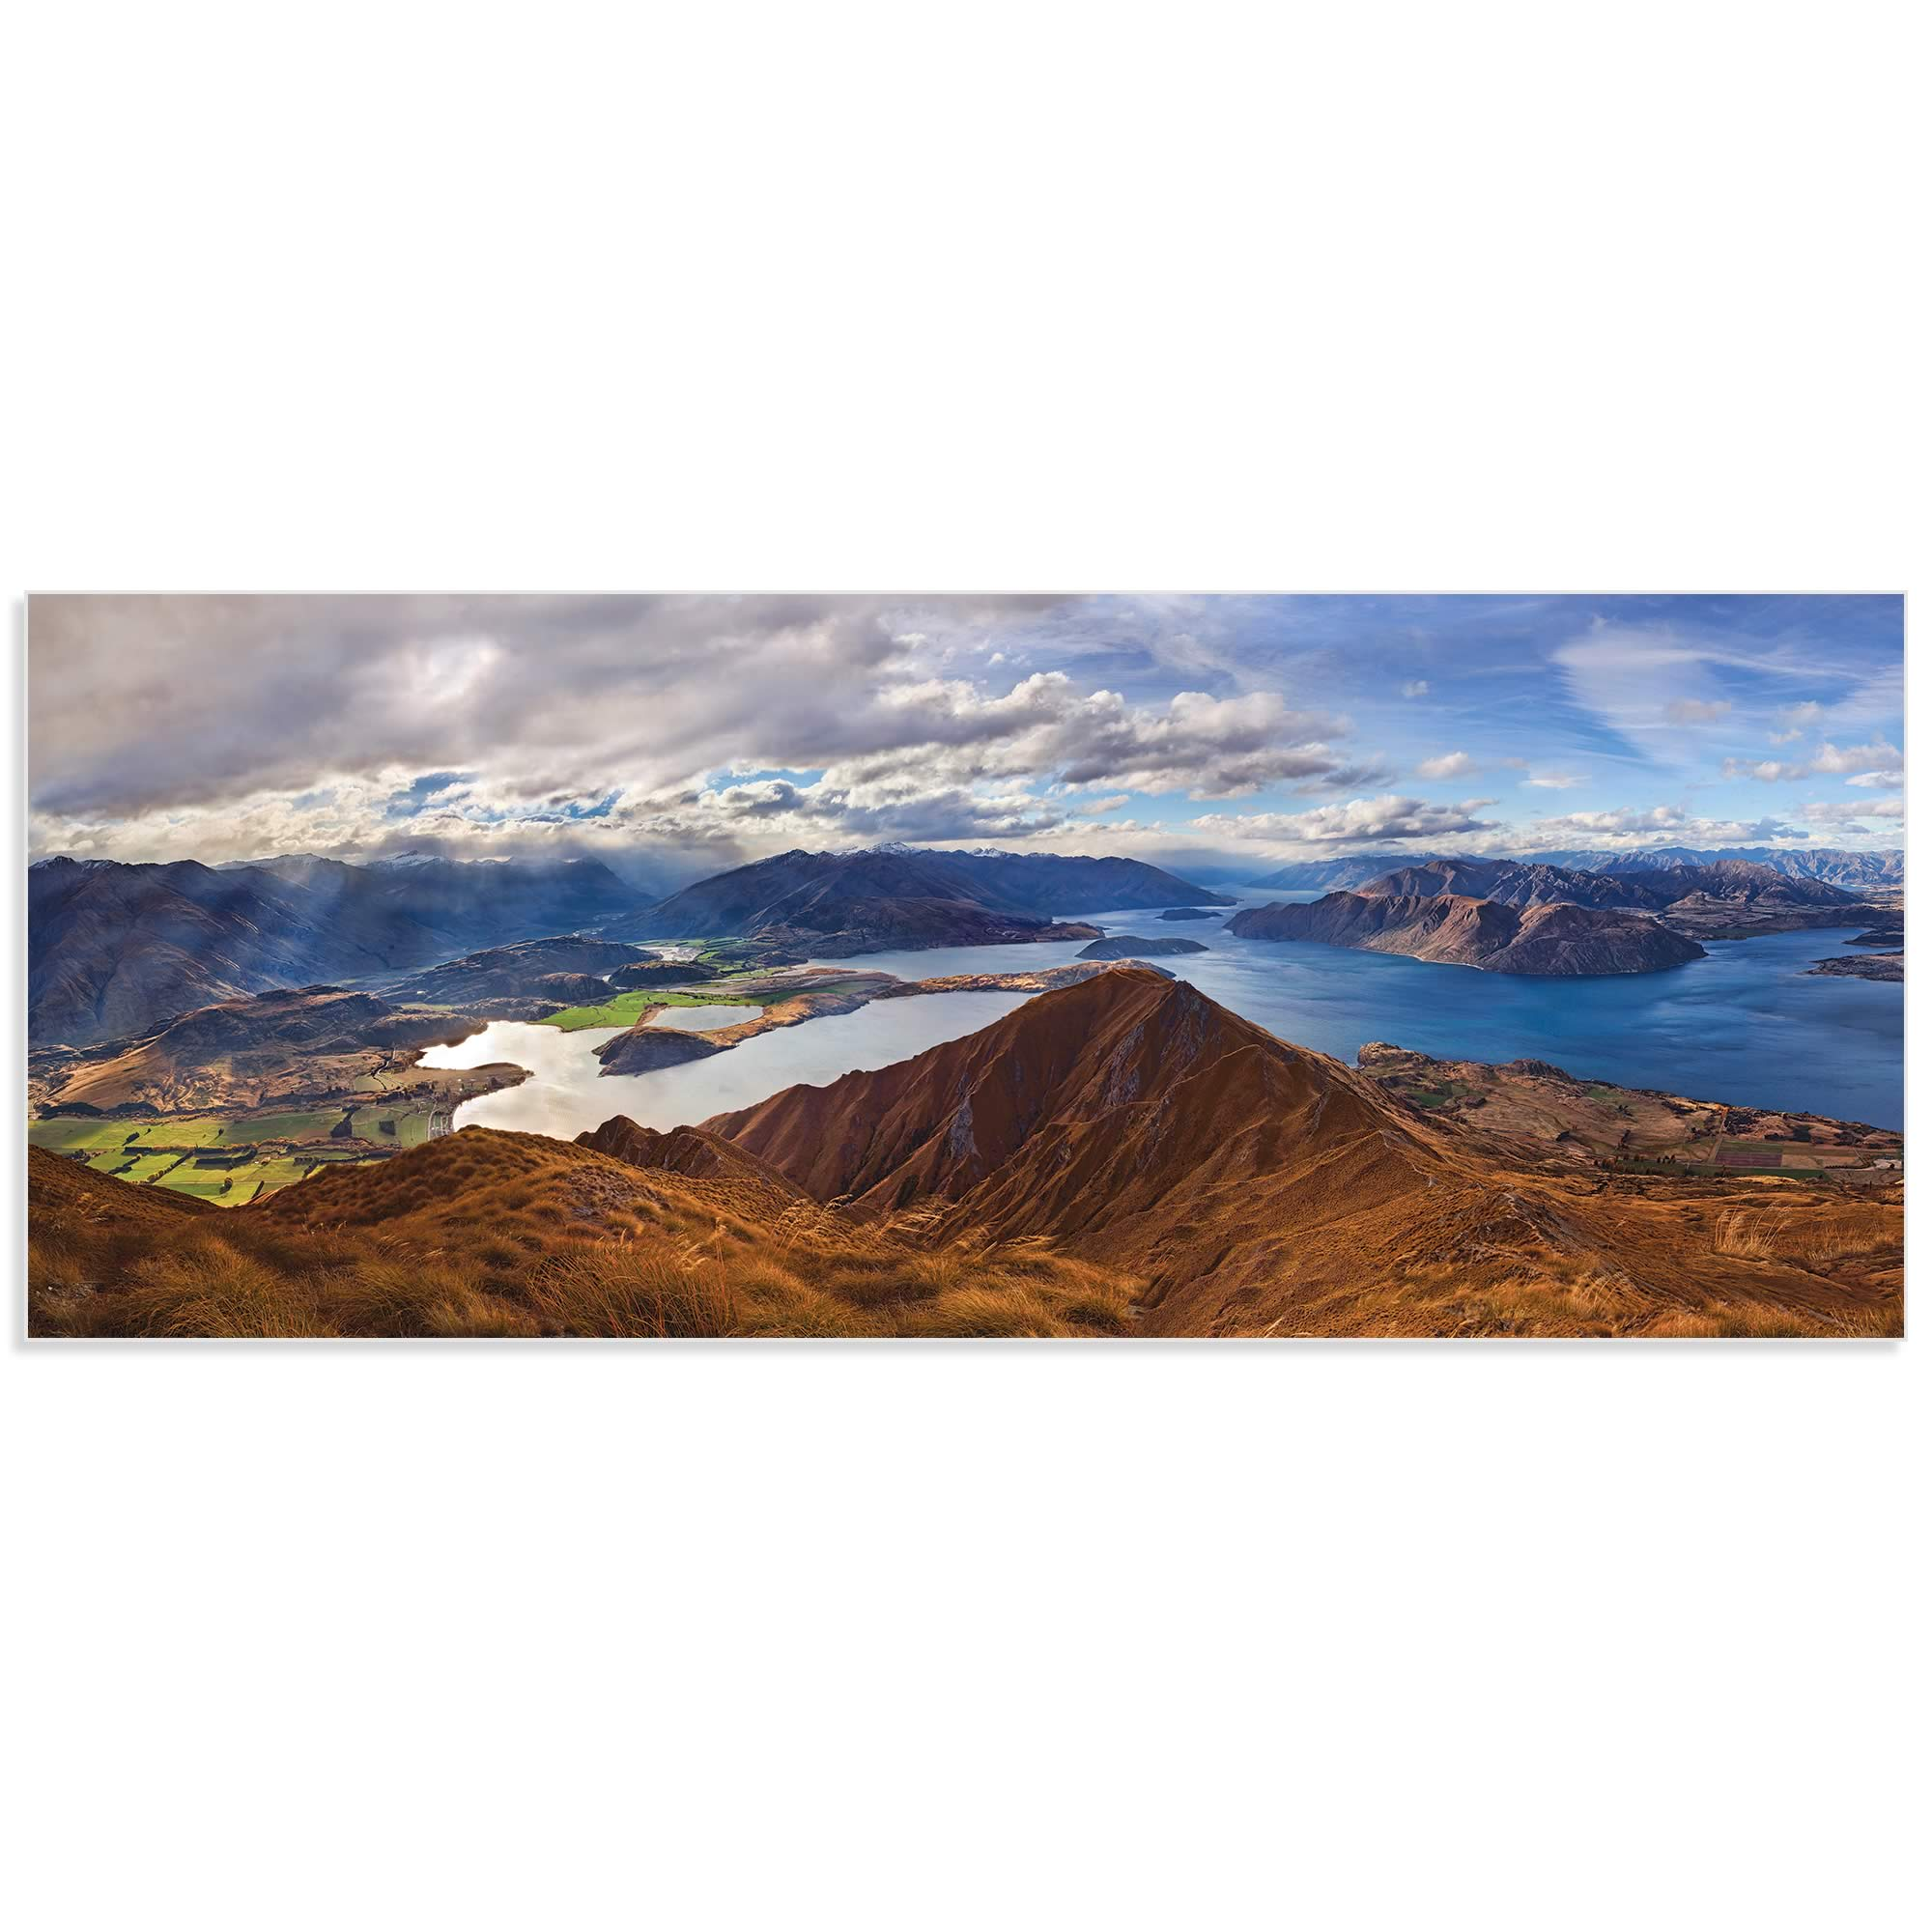 Roys Peak by Yan Zhang - Landscape Art on Metal or Acrylic - Alternate View 2